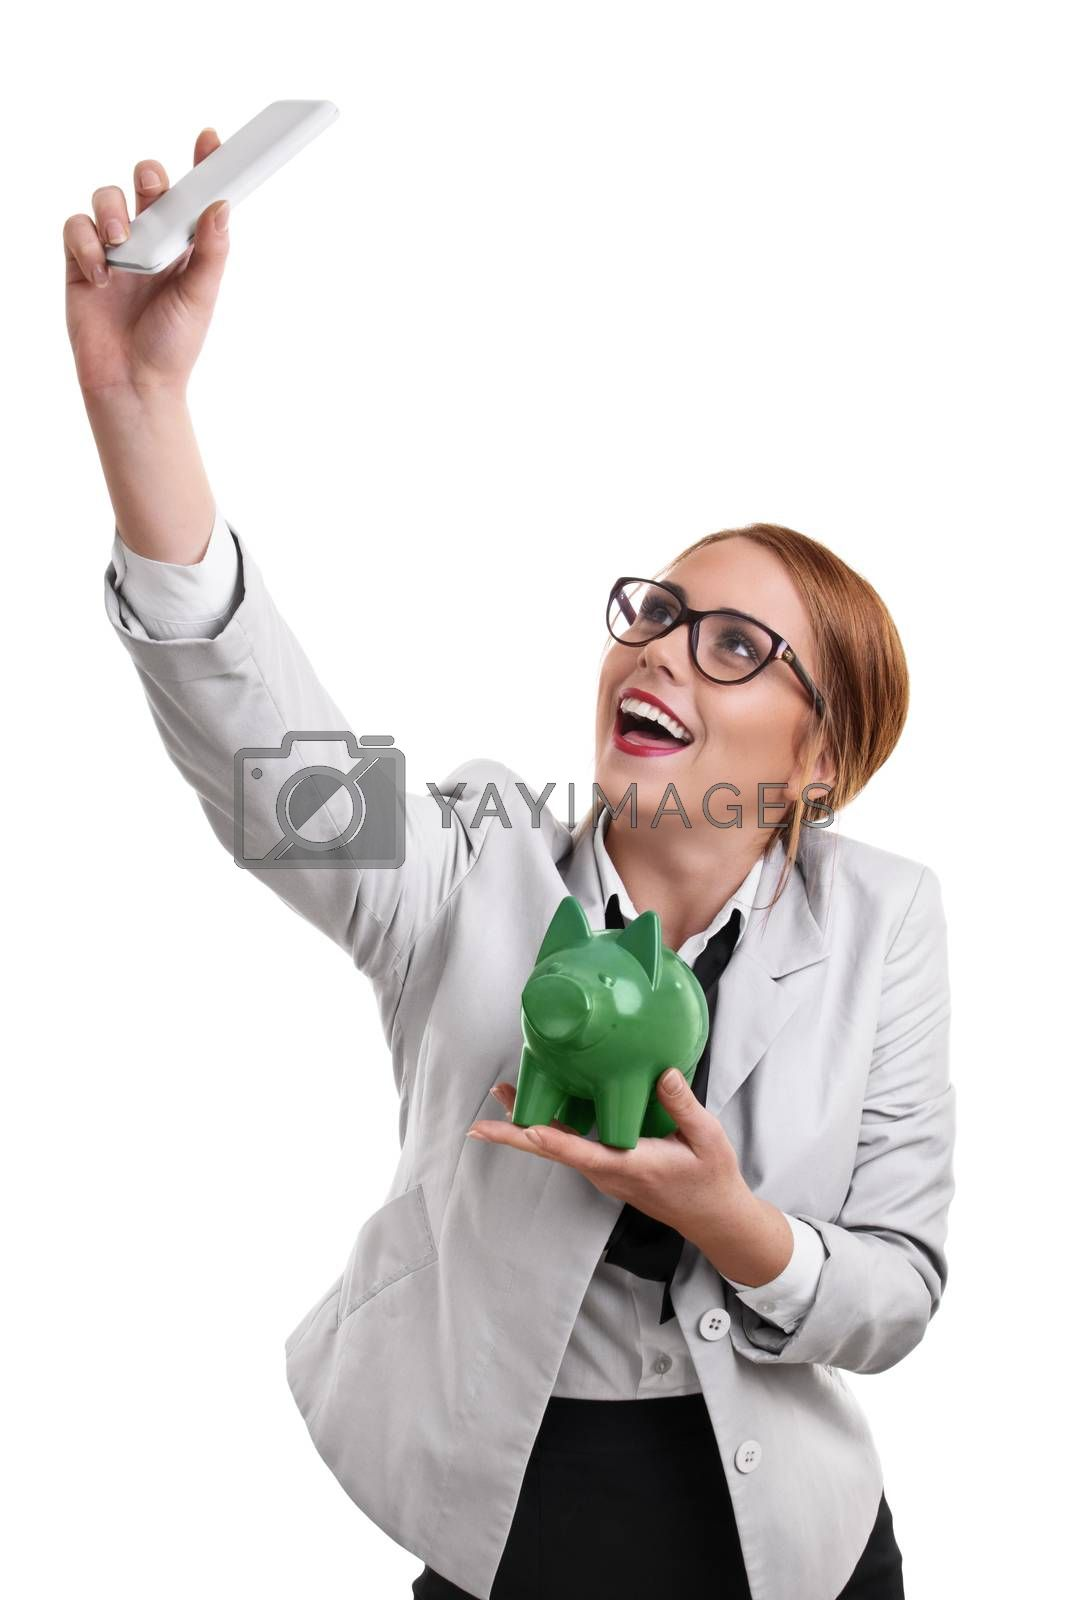 Smiling beautiful young business woman dressed in a suit with glasses taking a selfie with a green piggy bank, isolated on a white background.